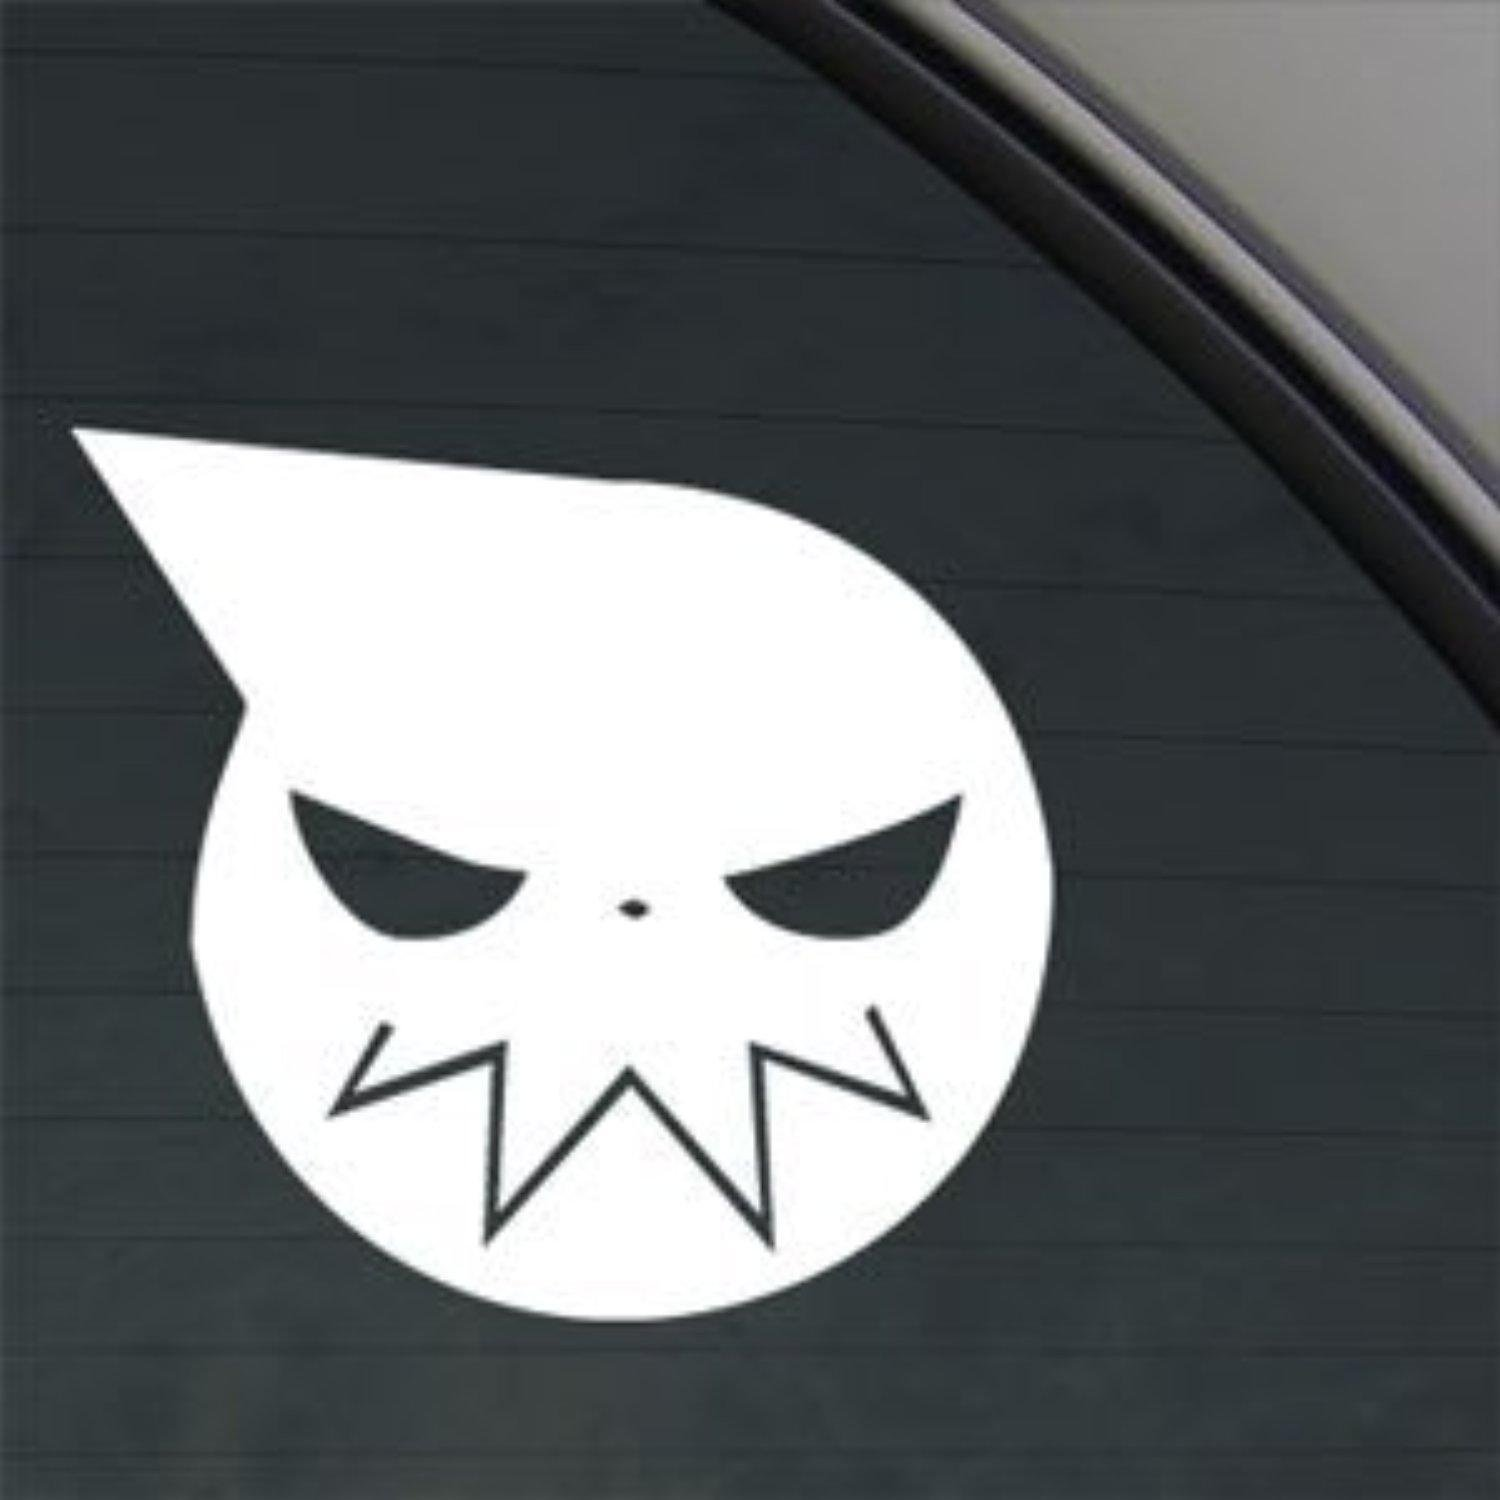 Amazoncom Soul Eater Decal Anime Car Truck Bumper Window Sticker - Window decals amazon